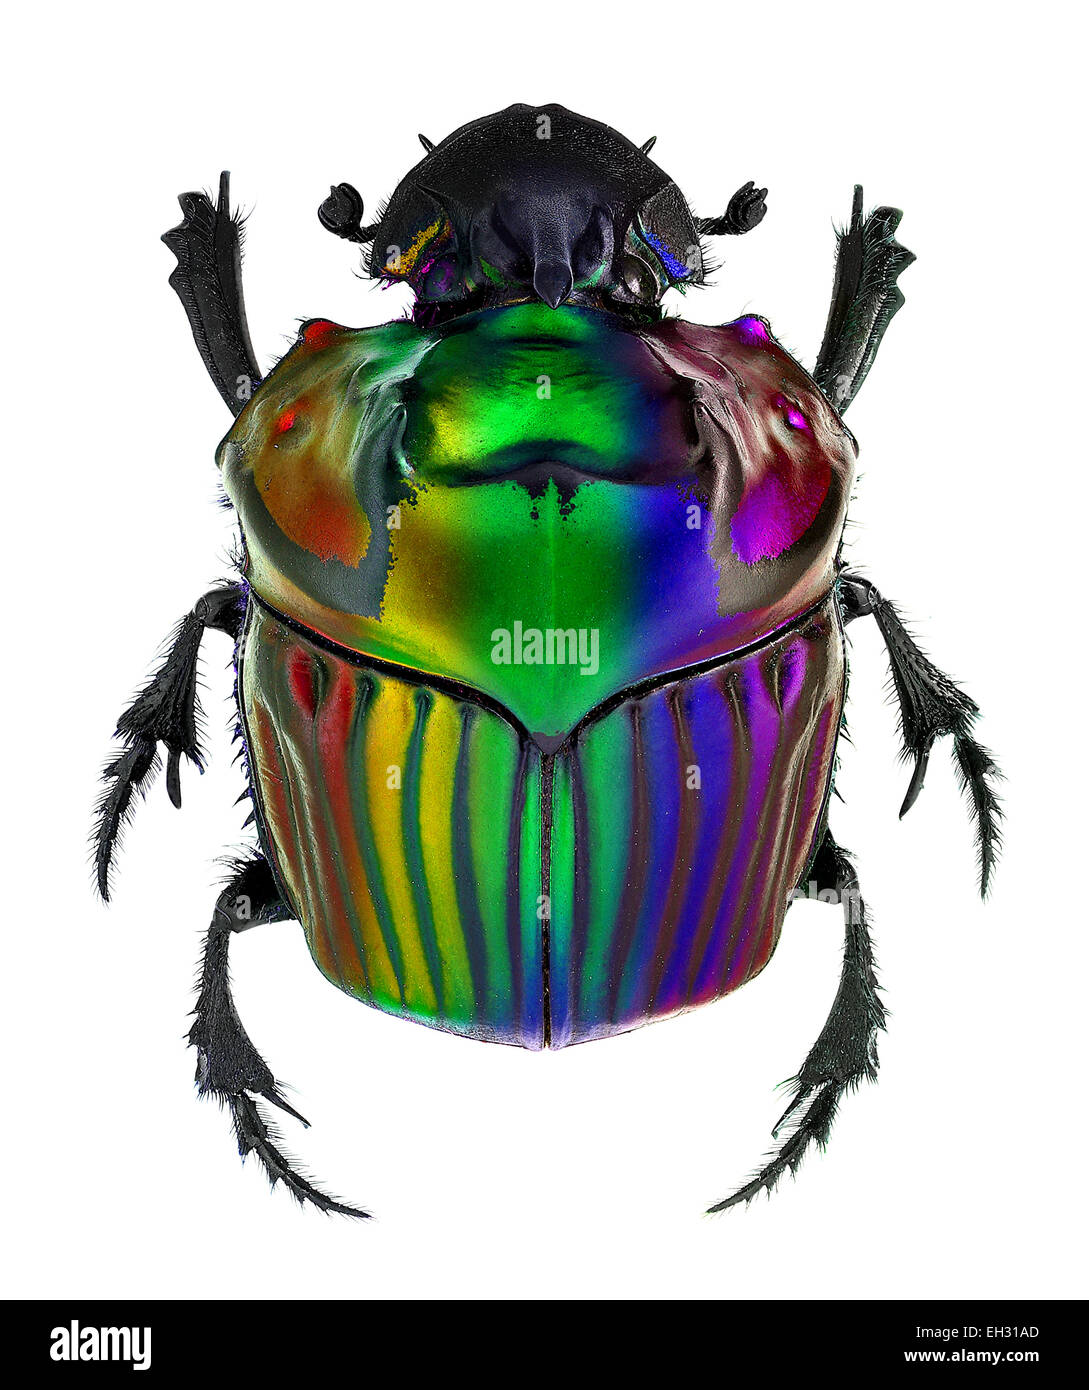 fantasy colors on Oxysternon conspicillatum dung beetle Stock Photo